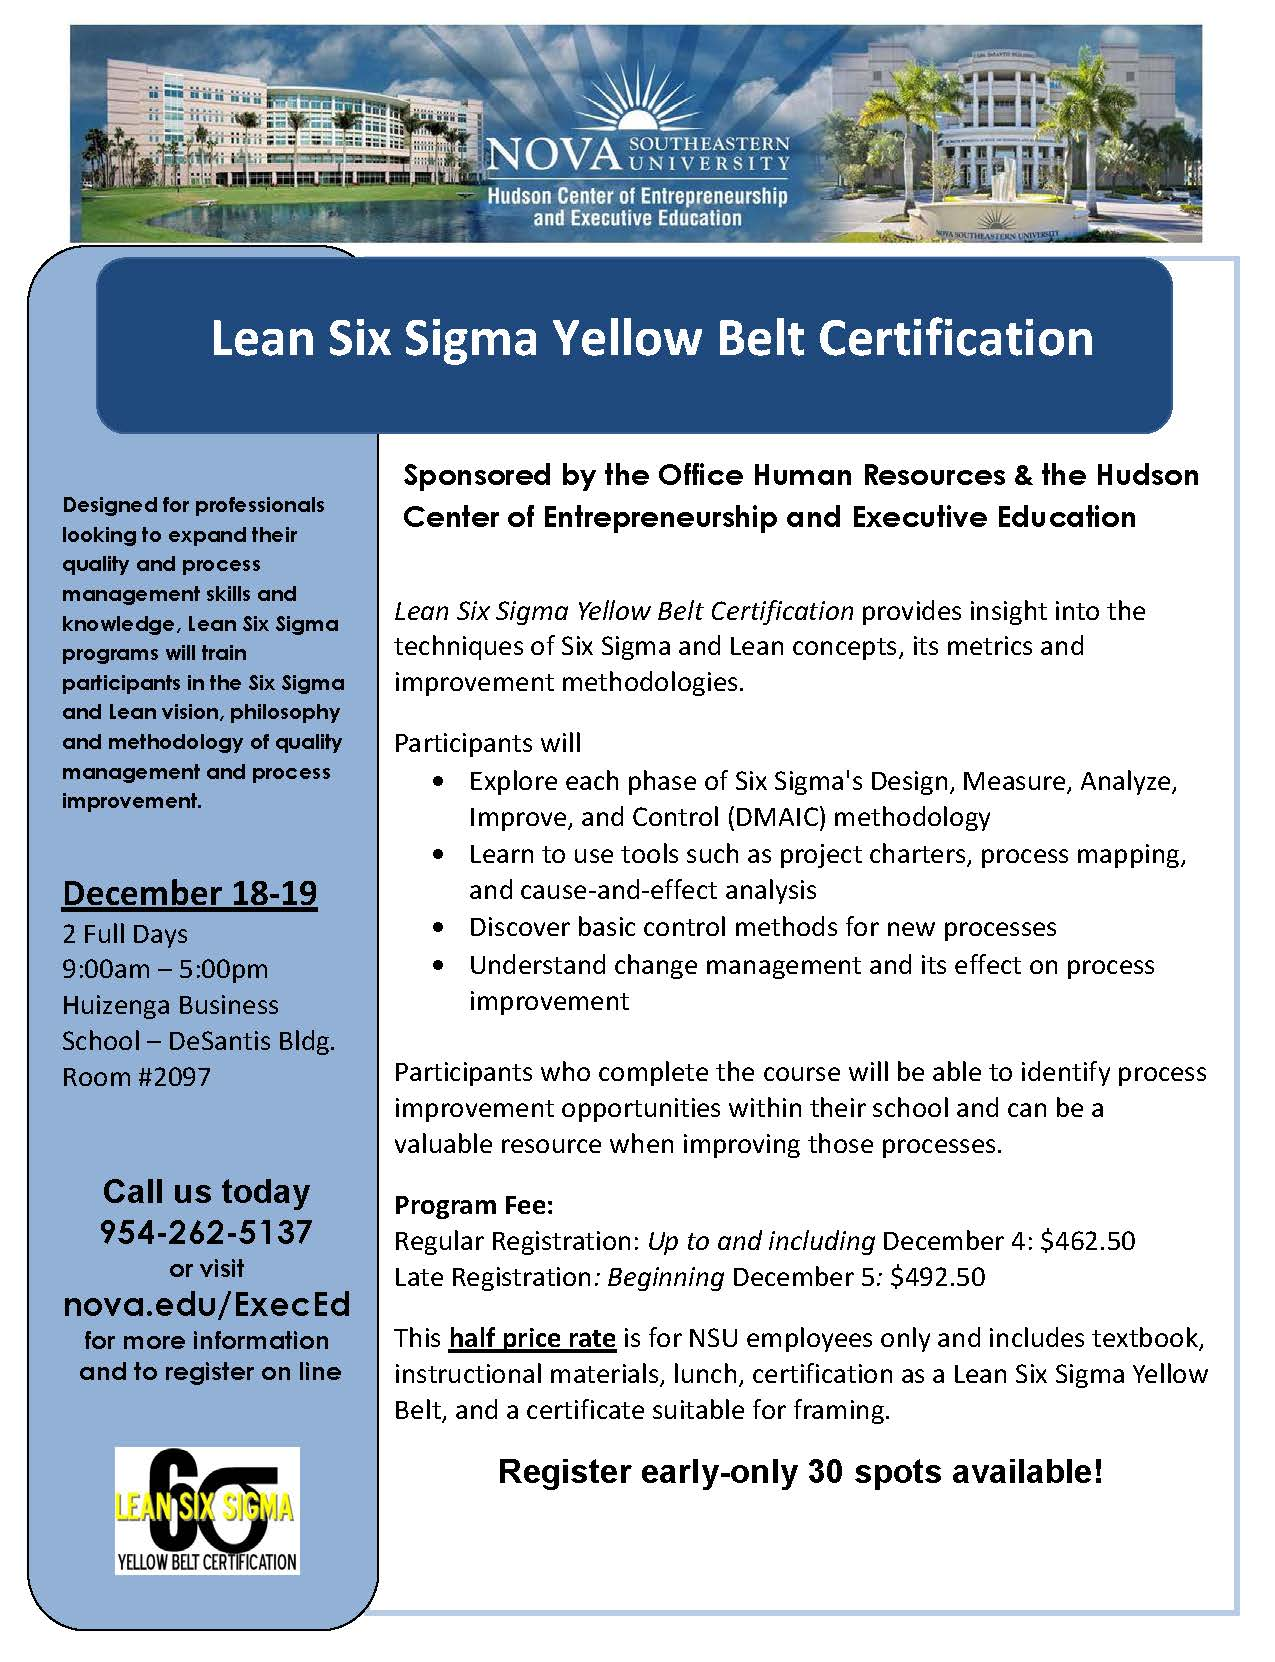 Lean six sigma yellow belt certification dec 18 19 nsu newsroom lean six sigma yellow belt certification dec 18 19 xflitez Images